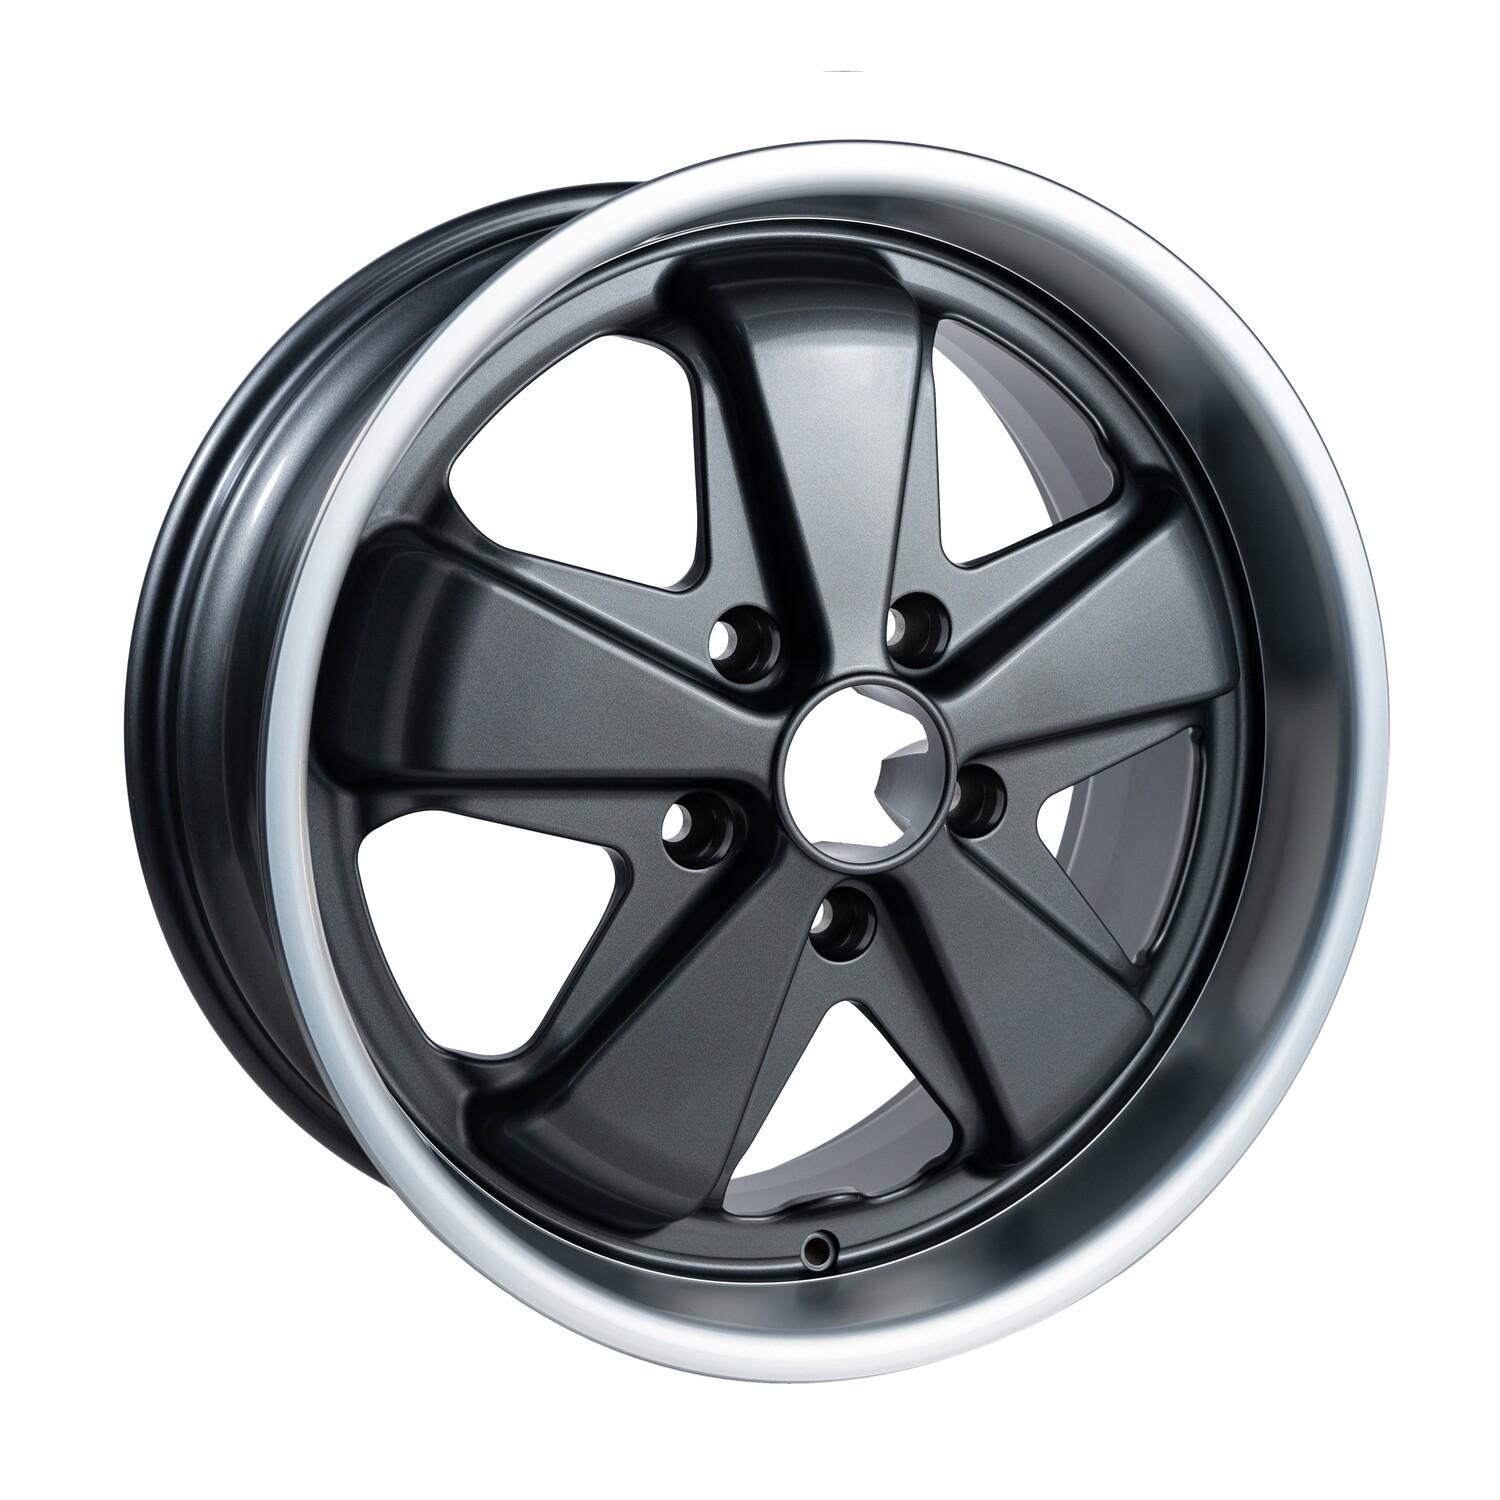 DP1885 Satin Anthracite 18 x 8.5